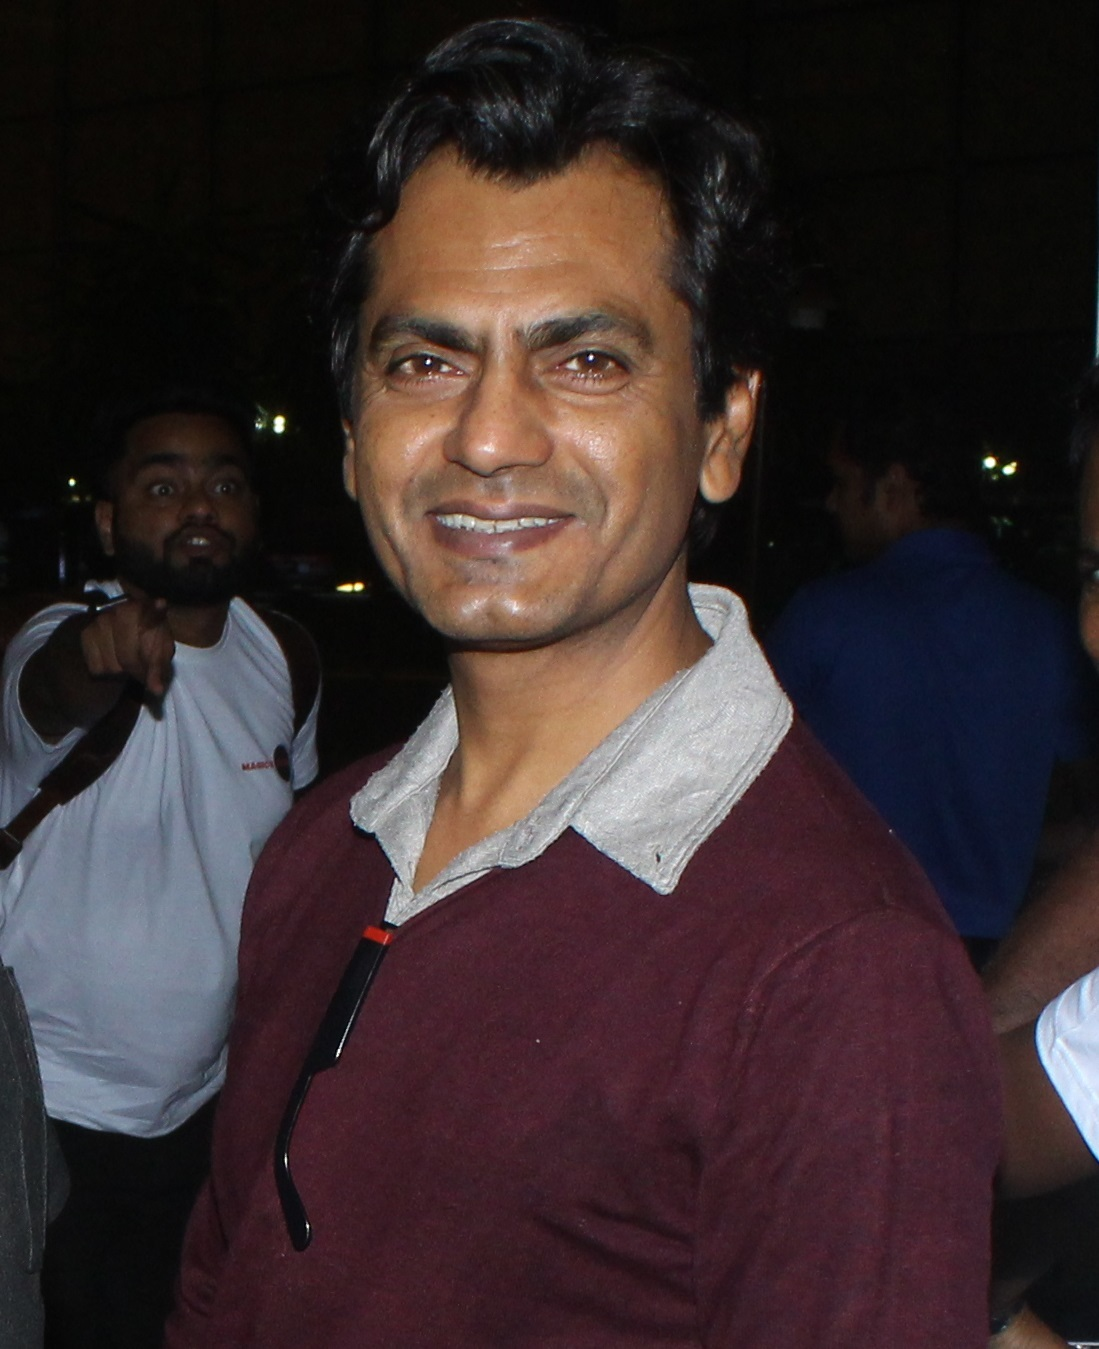 Nawazuddin Siddiqui at the airport. Photo: Yogen Shah